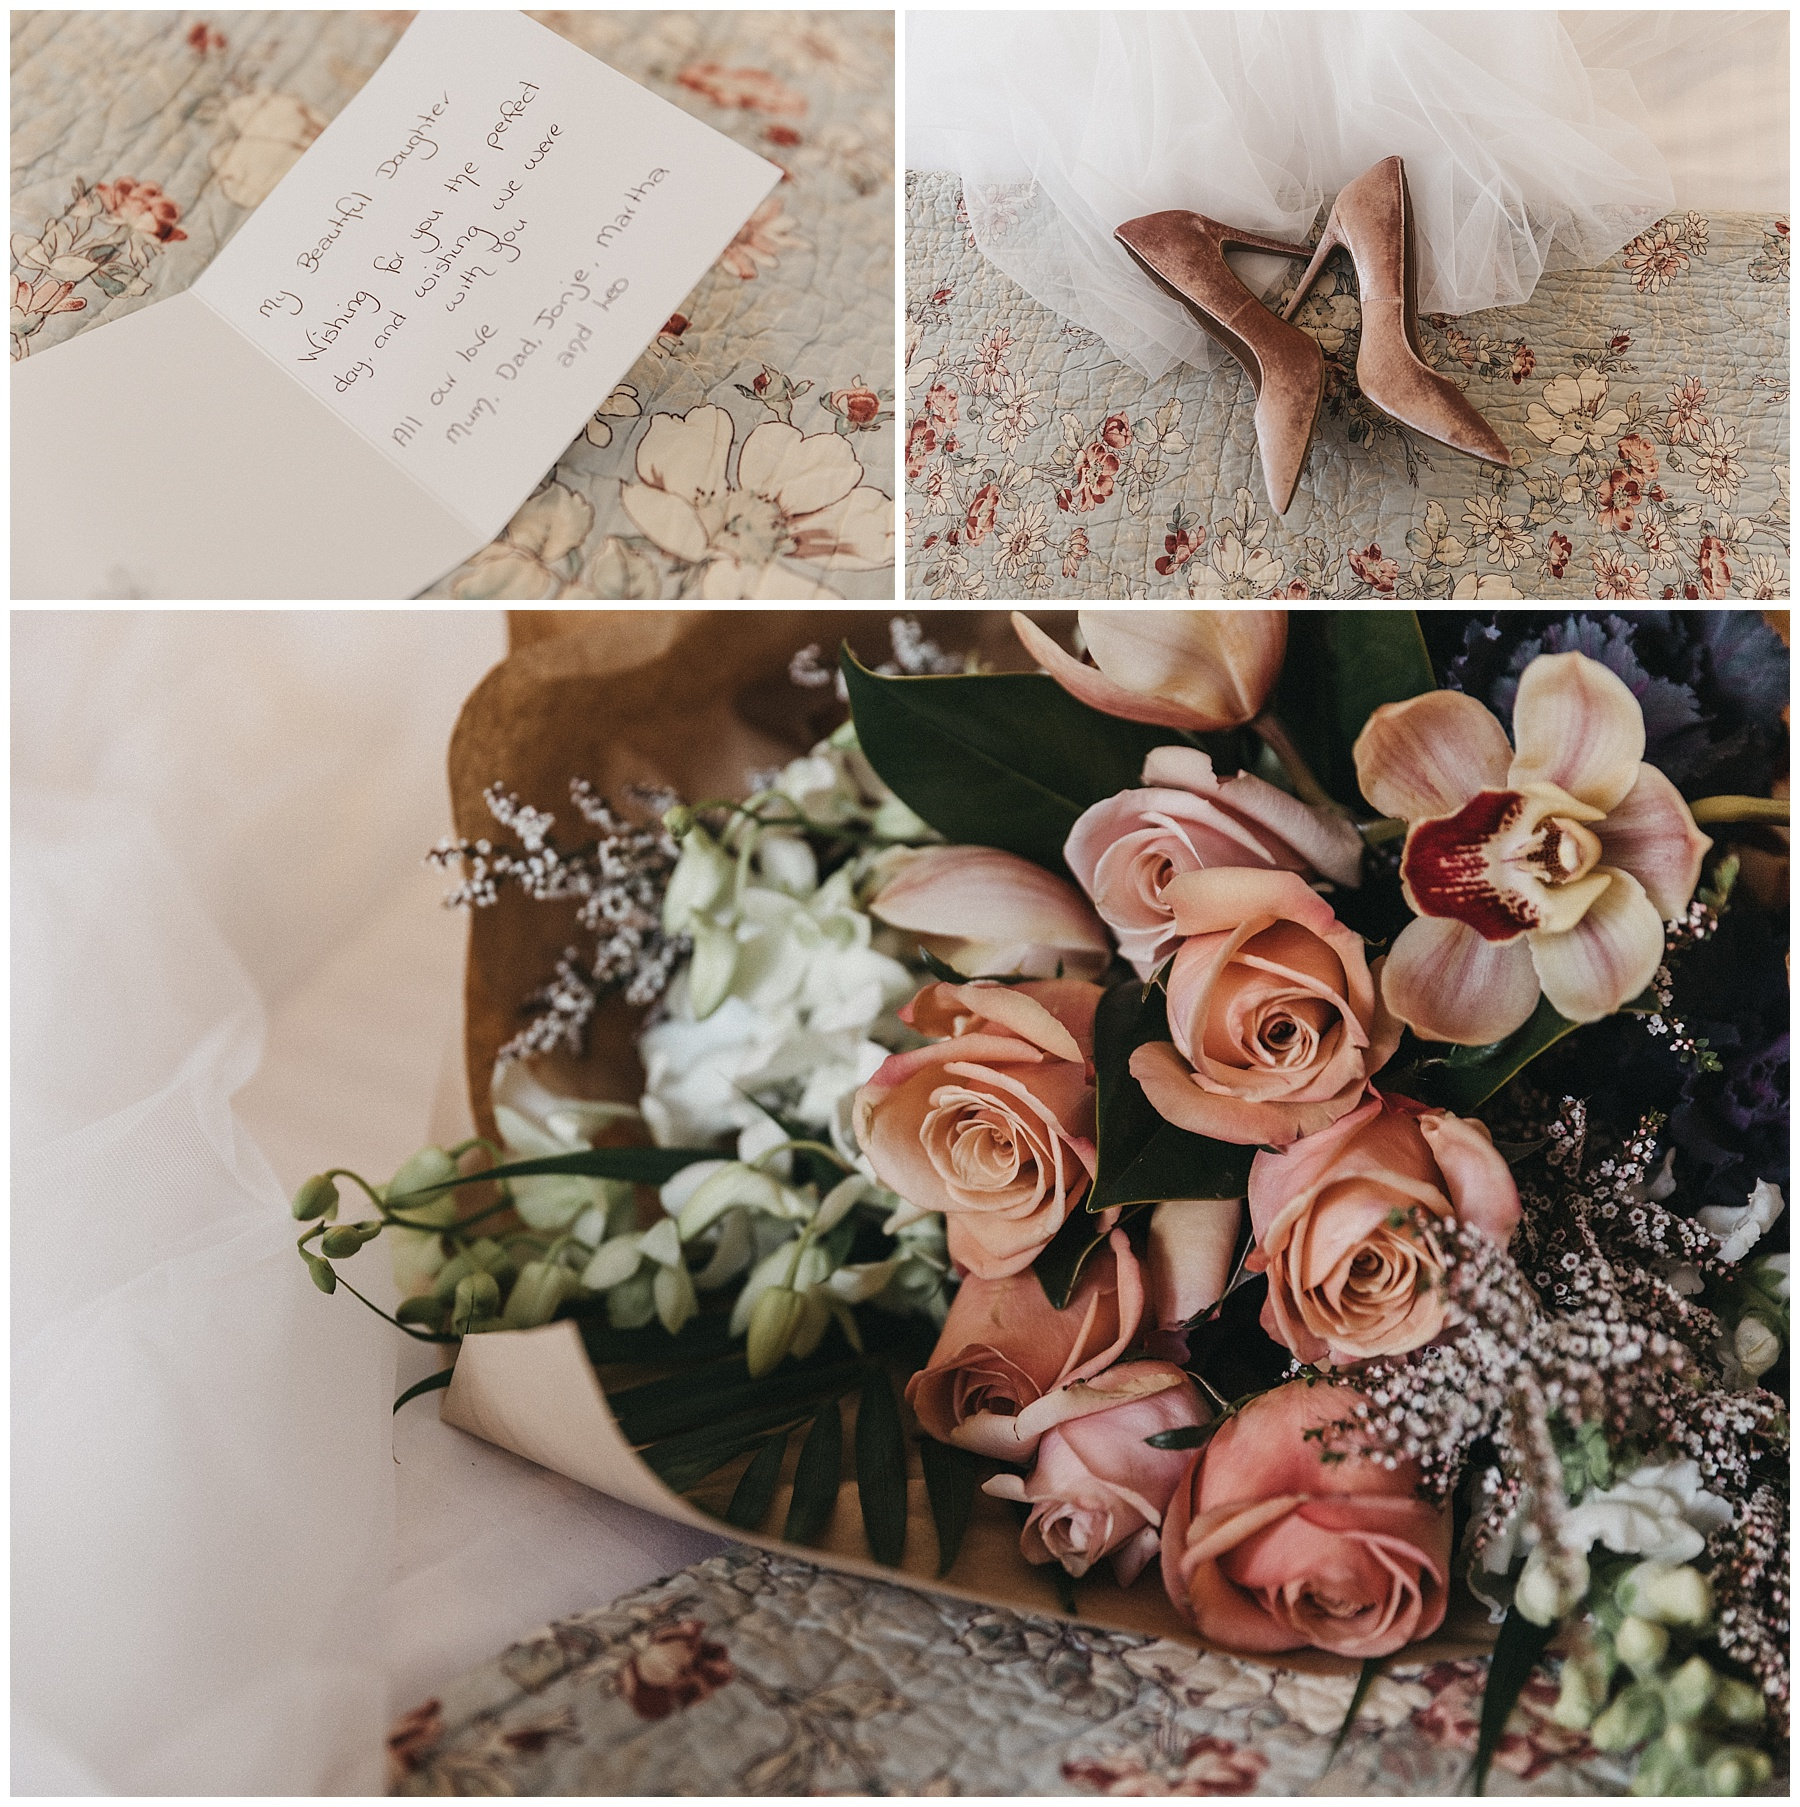 Wedding day inspiration - wedding flowers, love letters and the veil